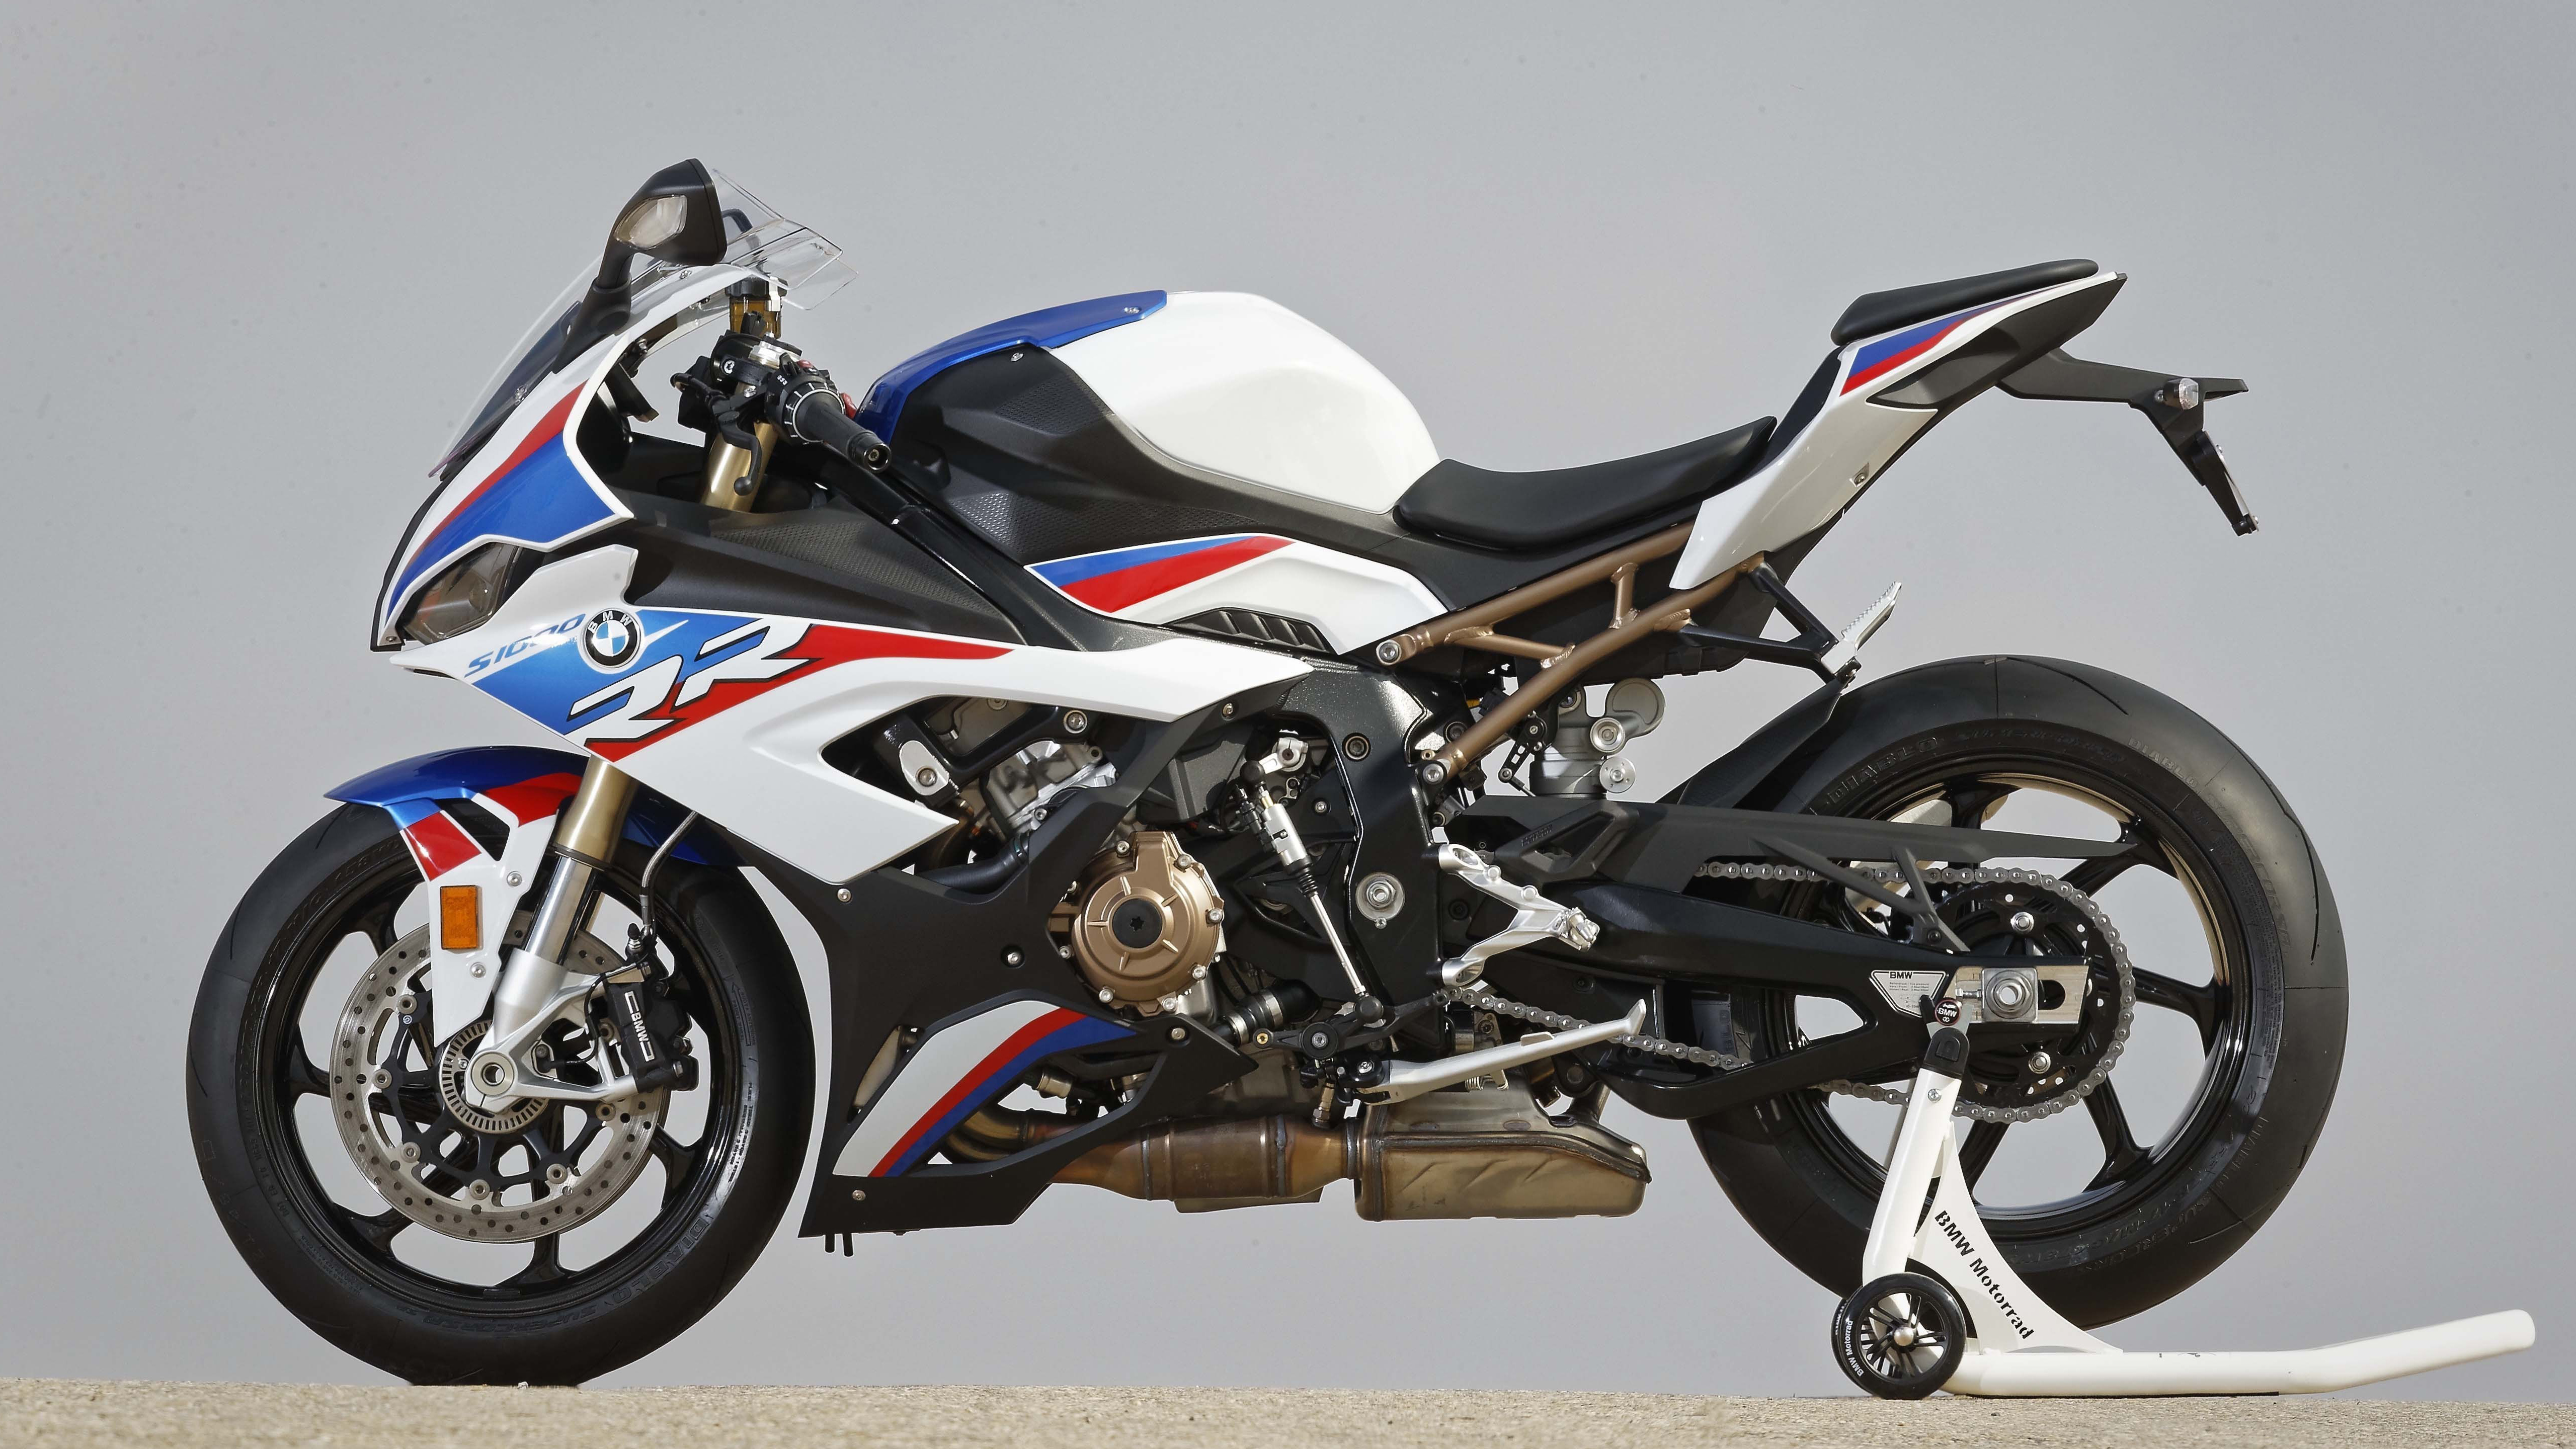 5K Image of 2019 BMW S1000RR Sport Motorcycle | HD Wallpapers